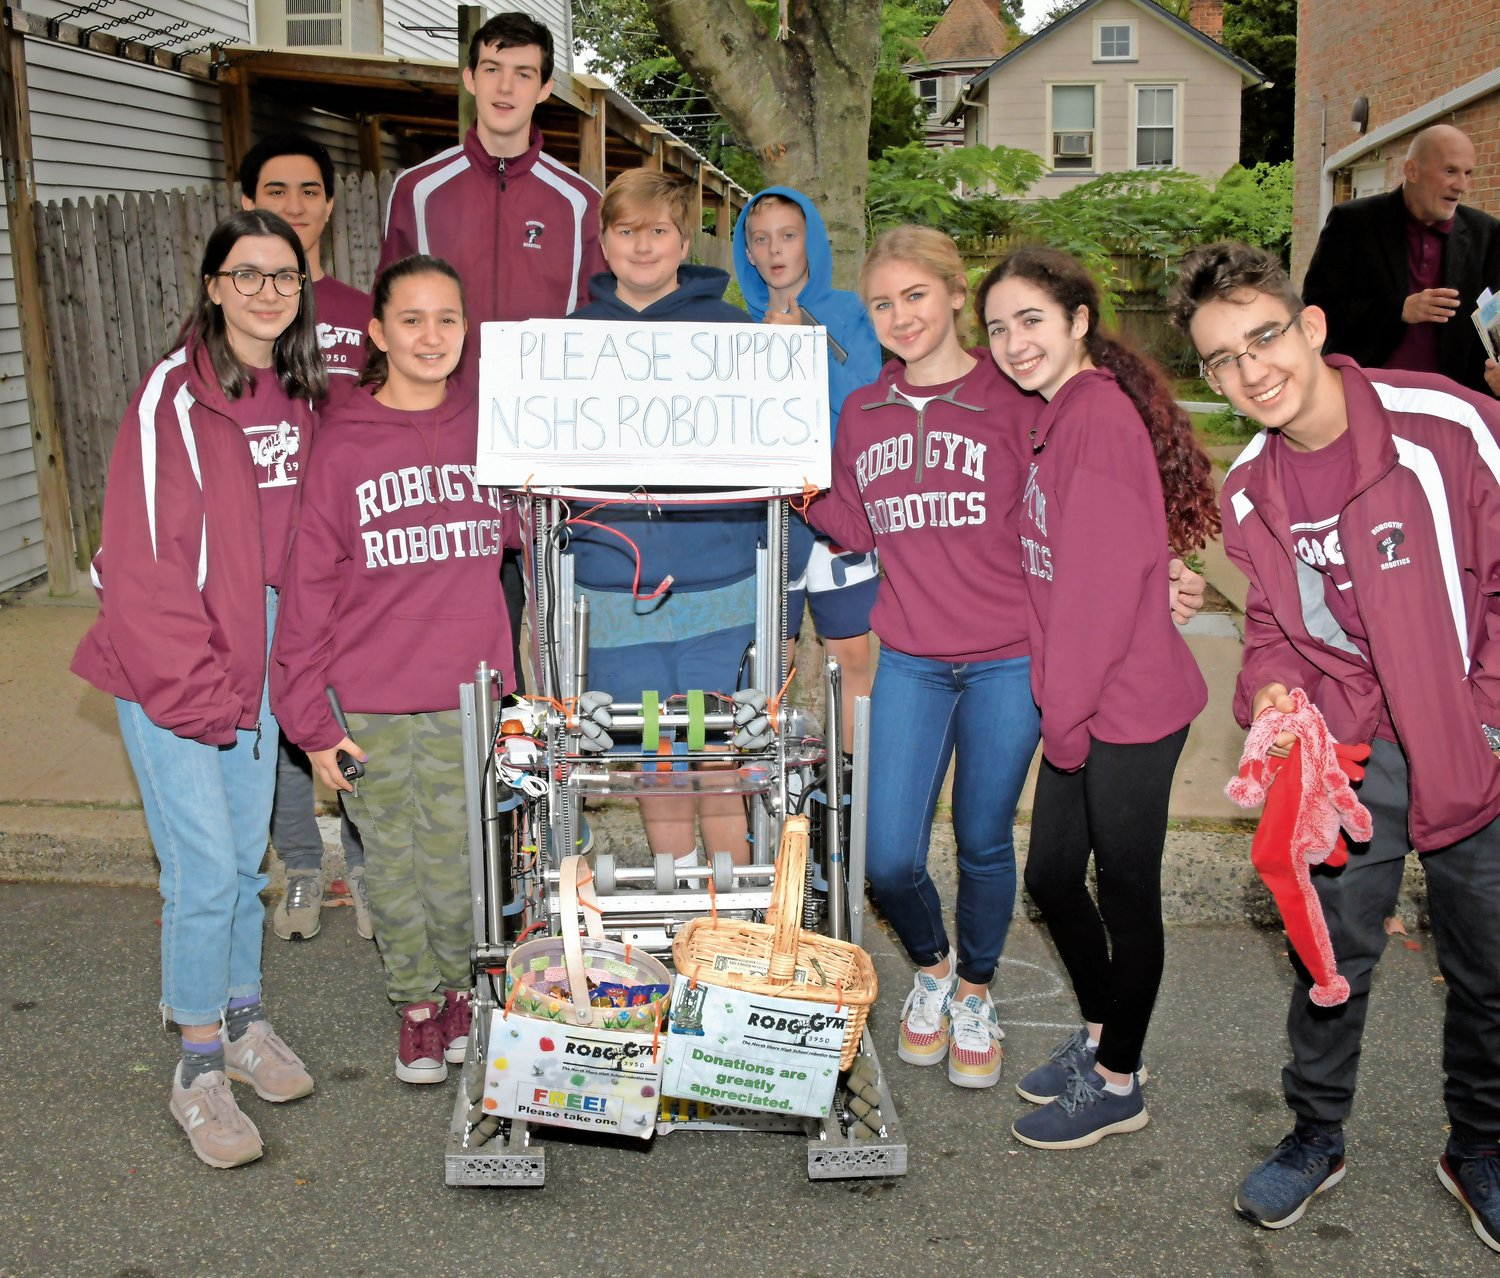 The North Shore High School Robotics Club gave a demonstration of its newest creation.